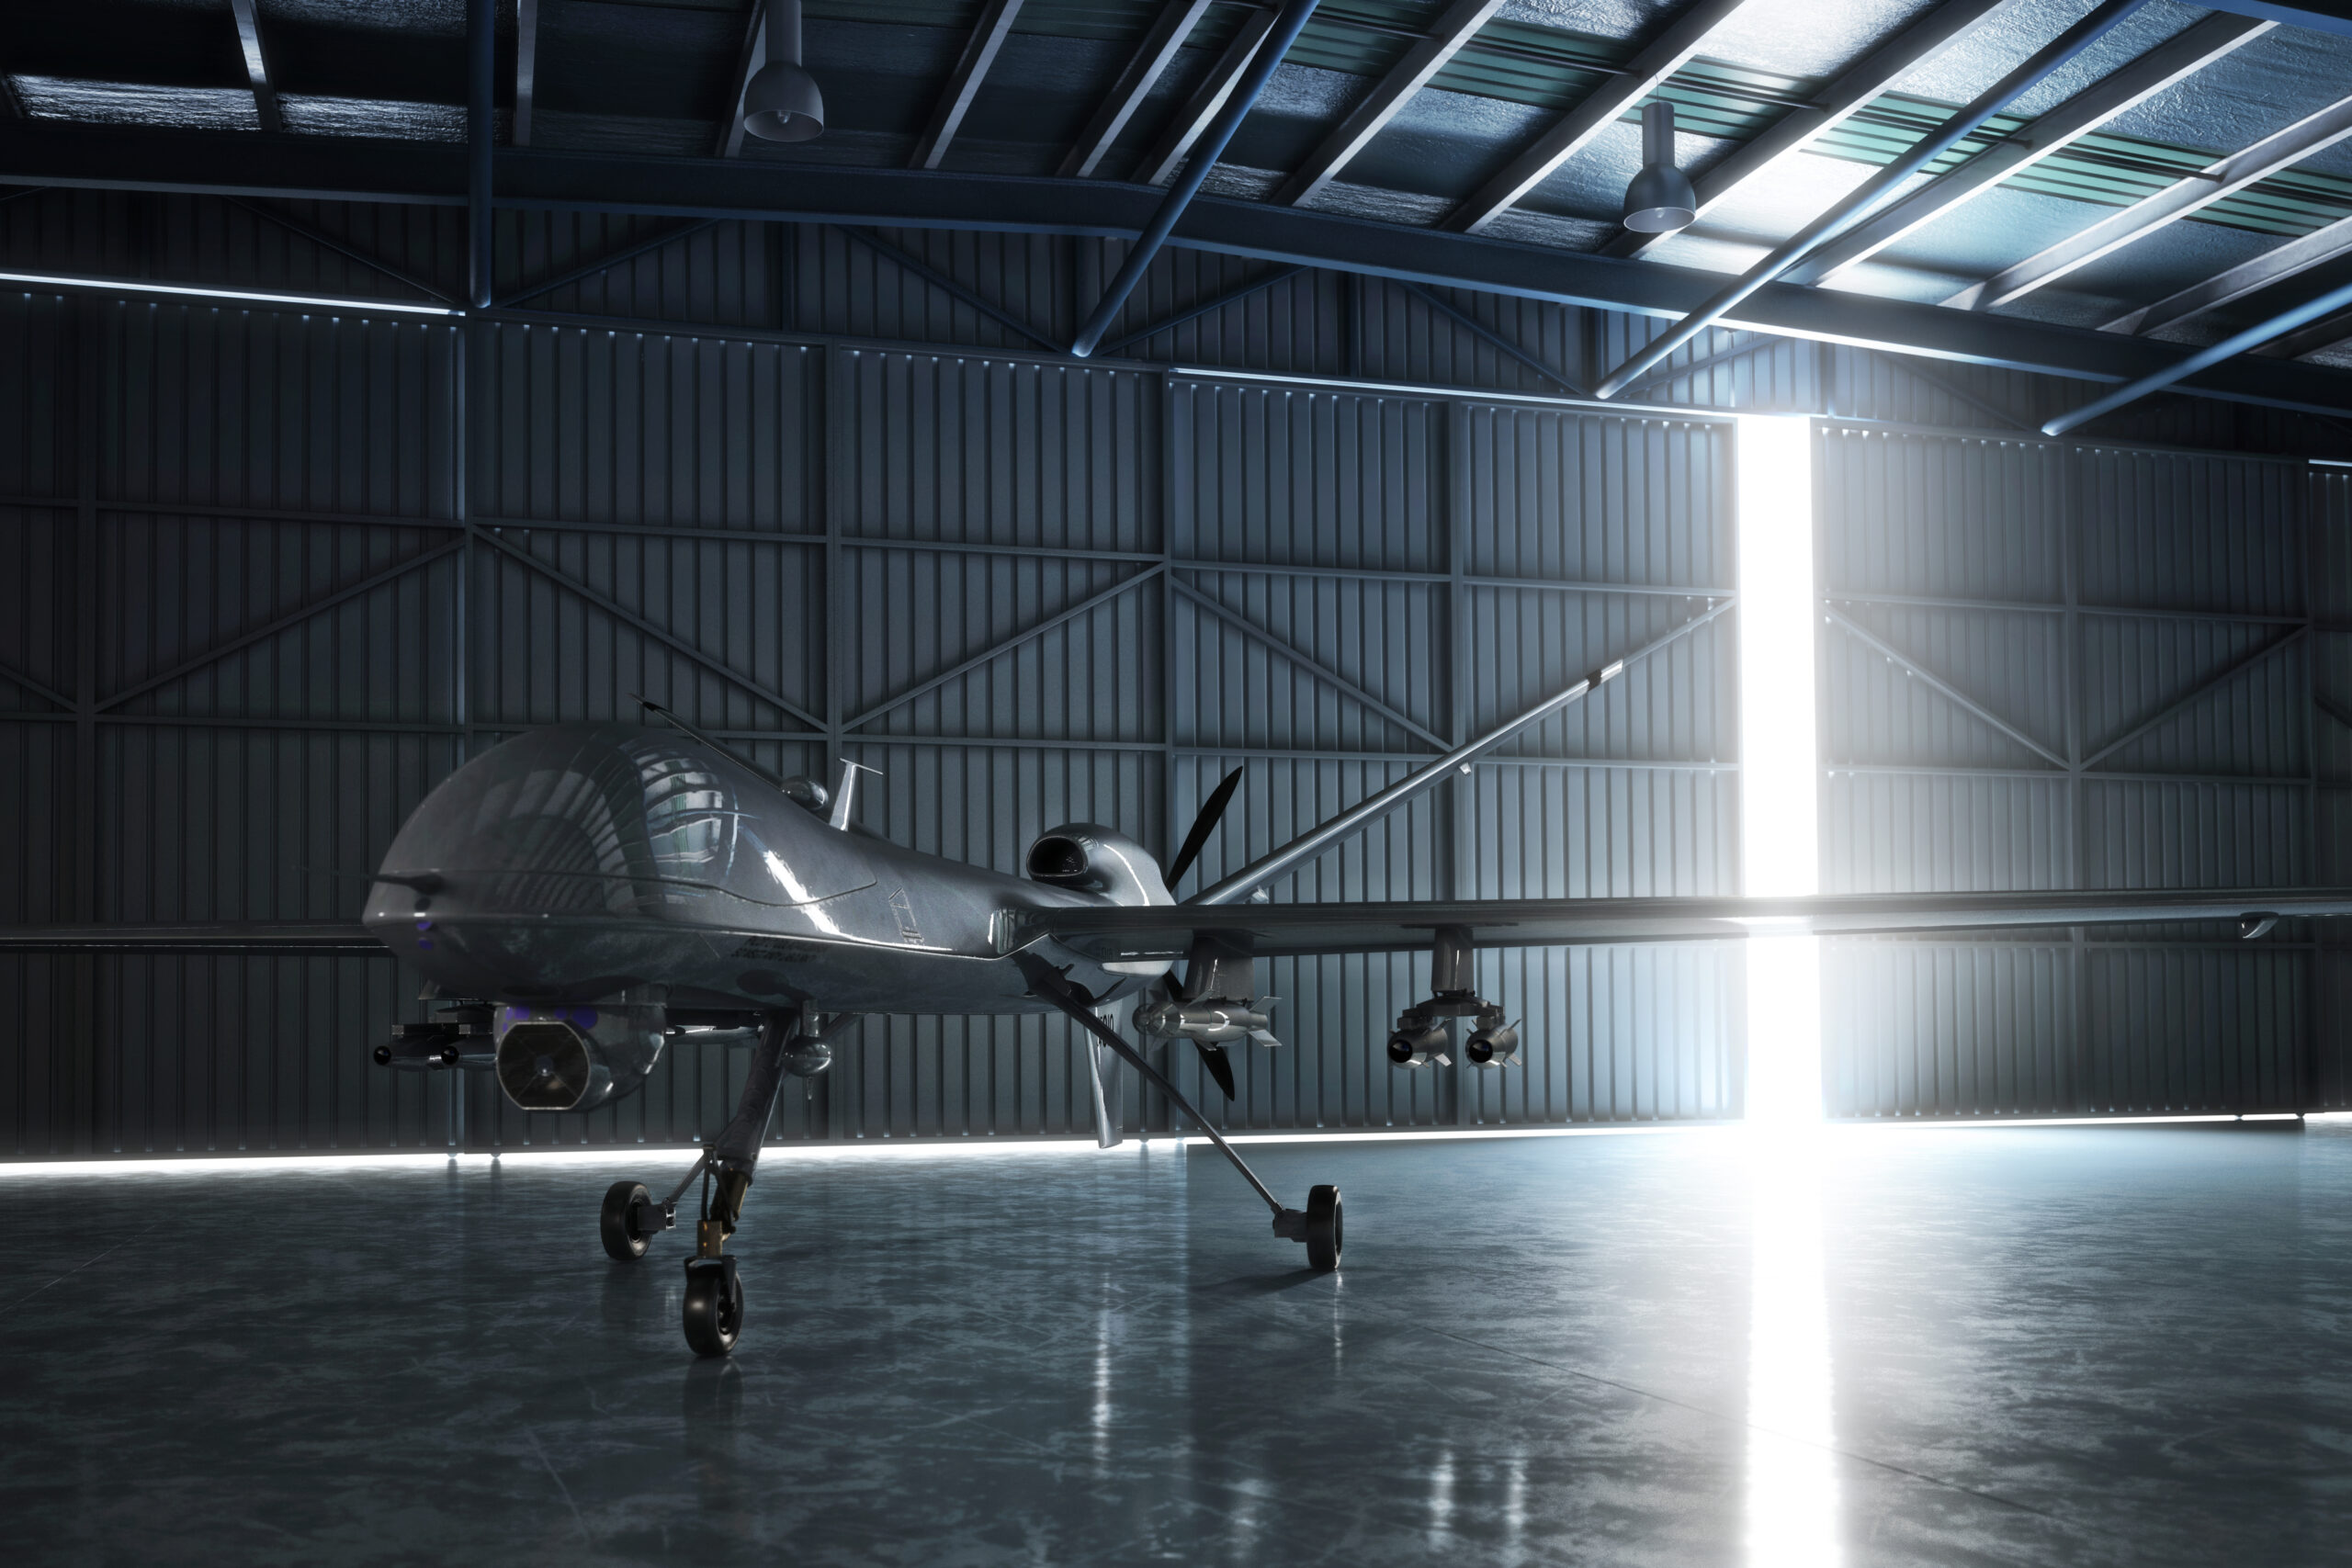 Hangar vs. Tie-Down: Where to park your Aircraft